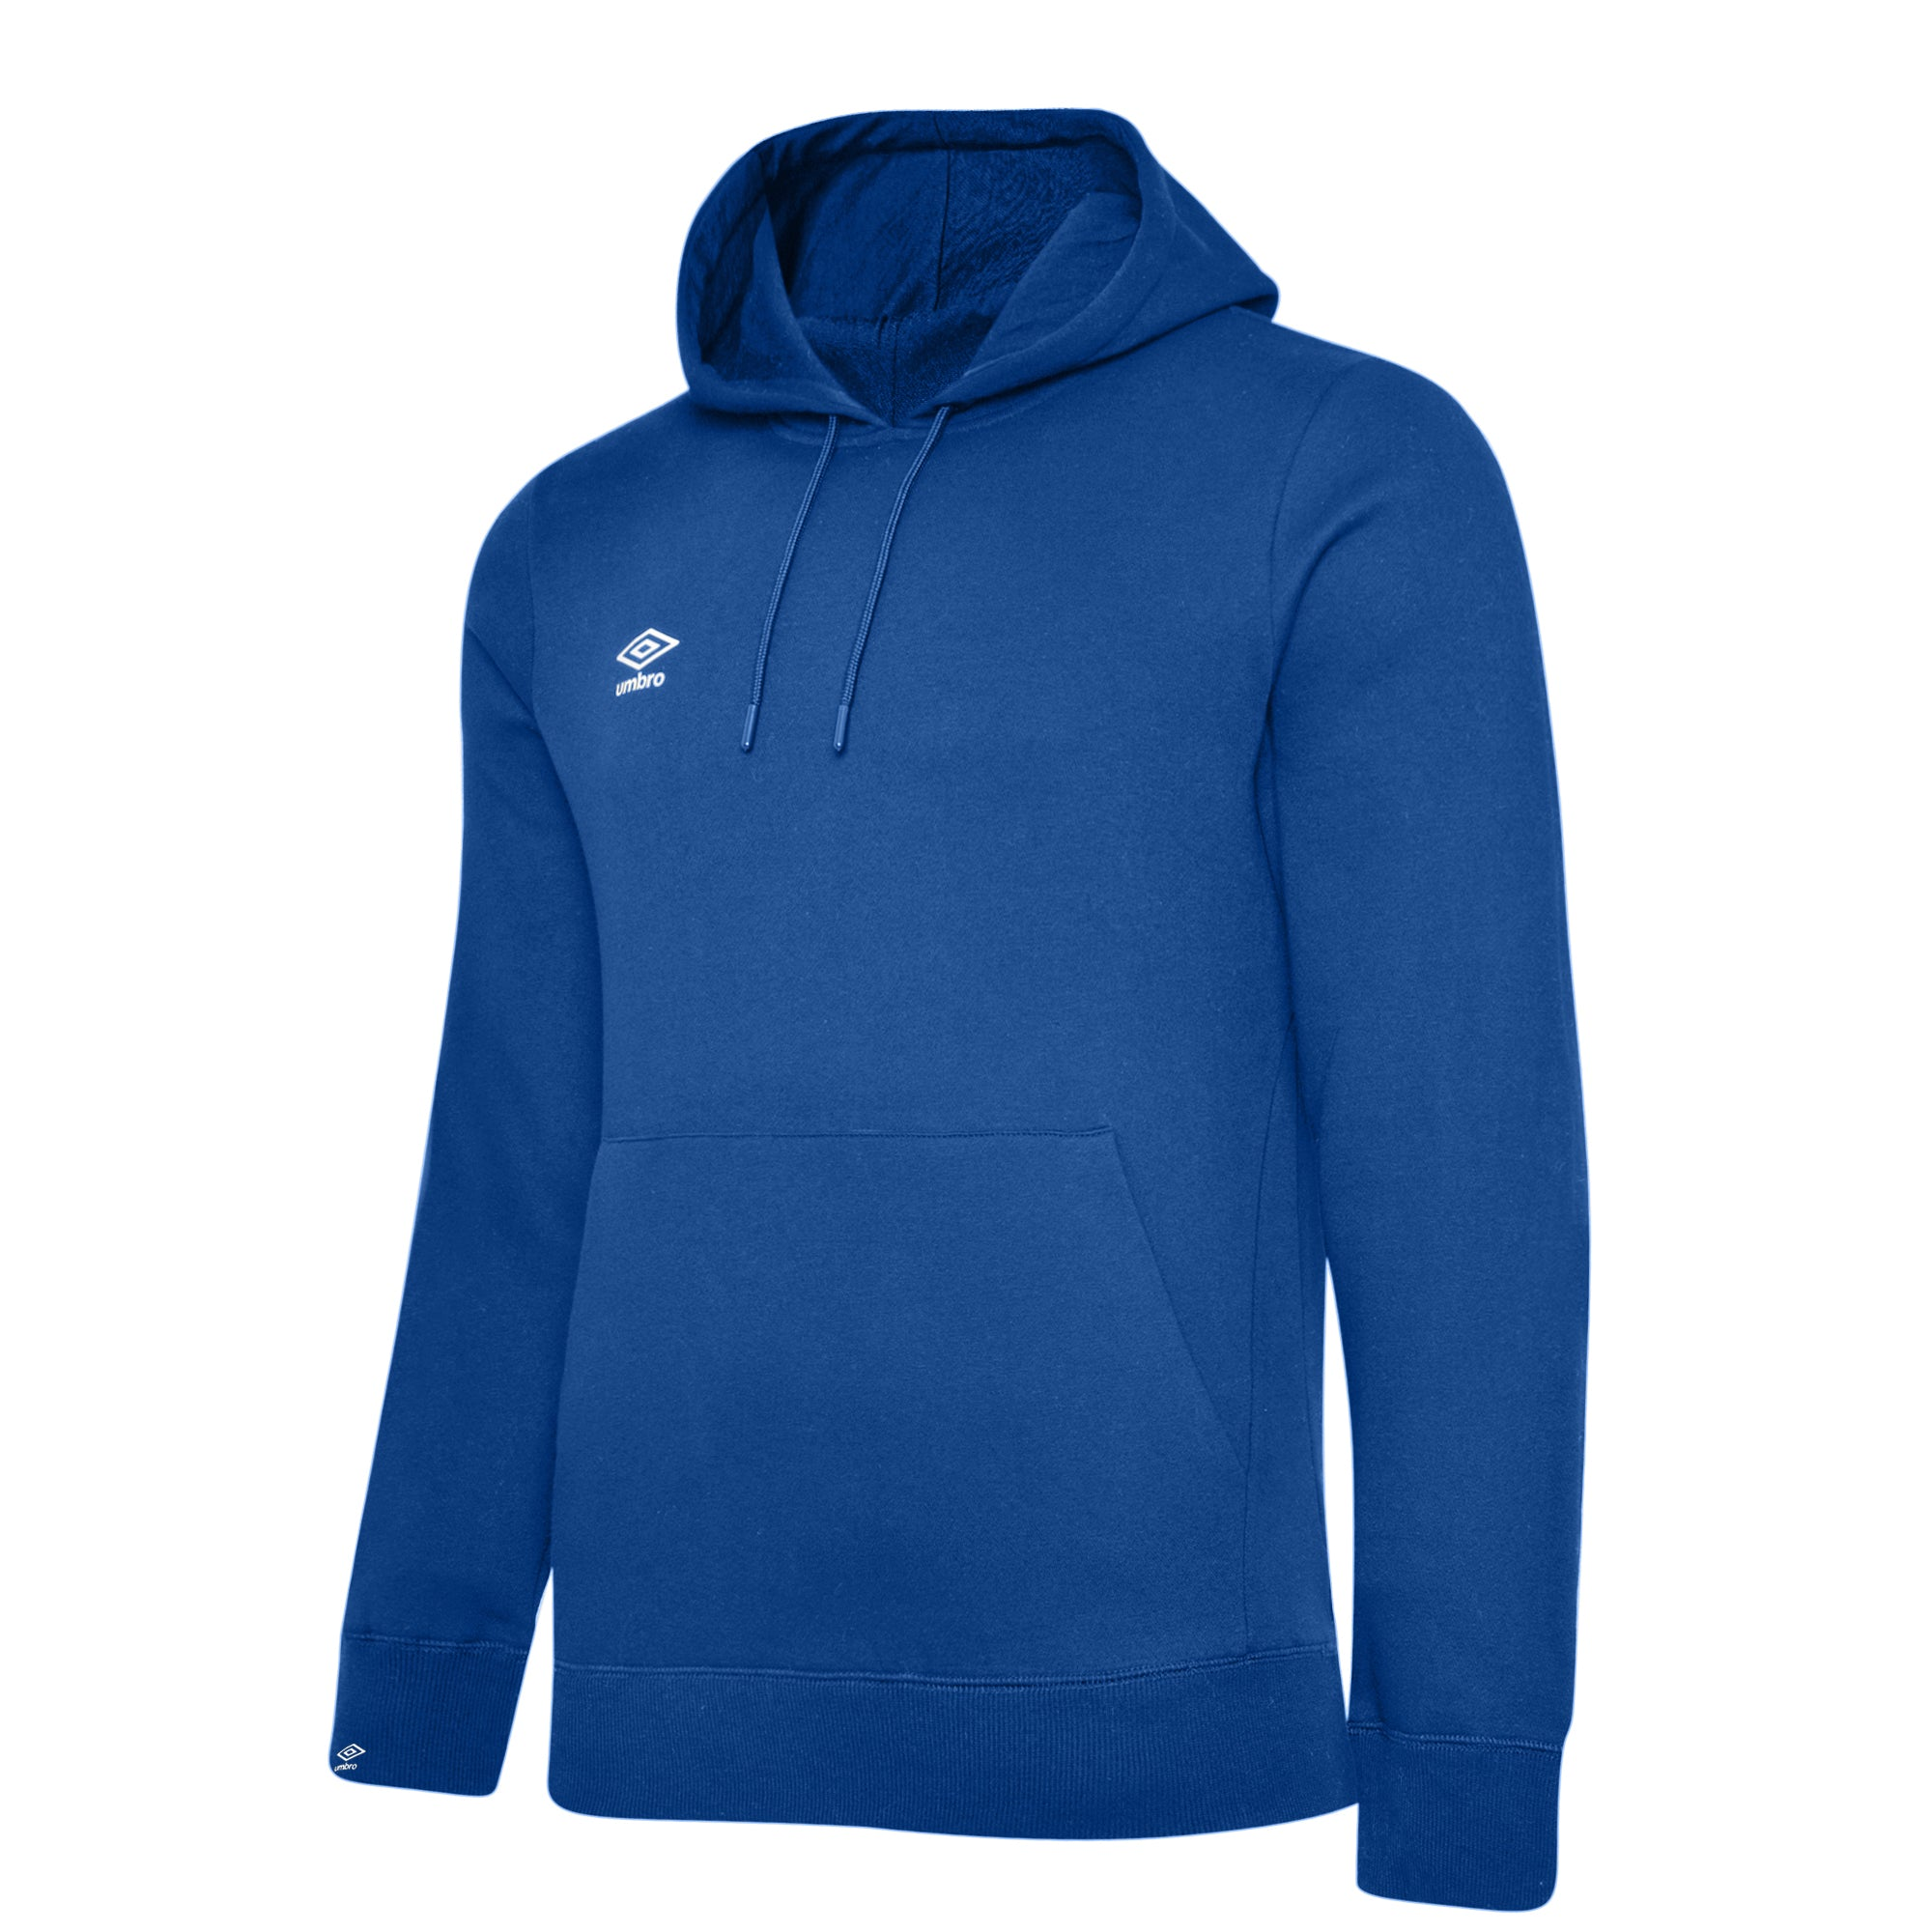 Umbro Club Leisure Hoody - TW Royal/White